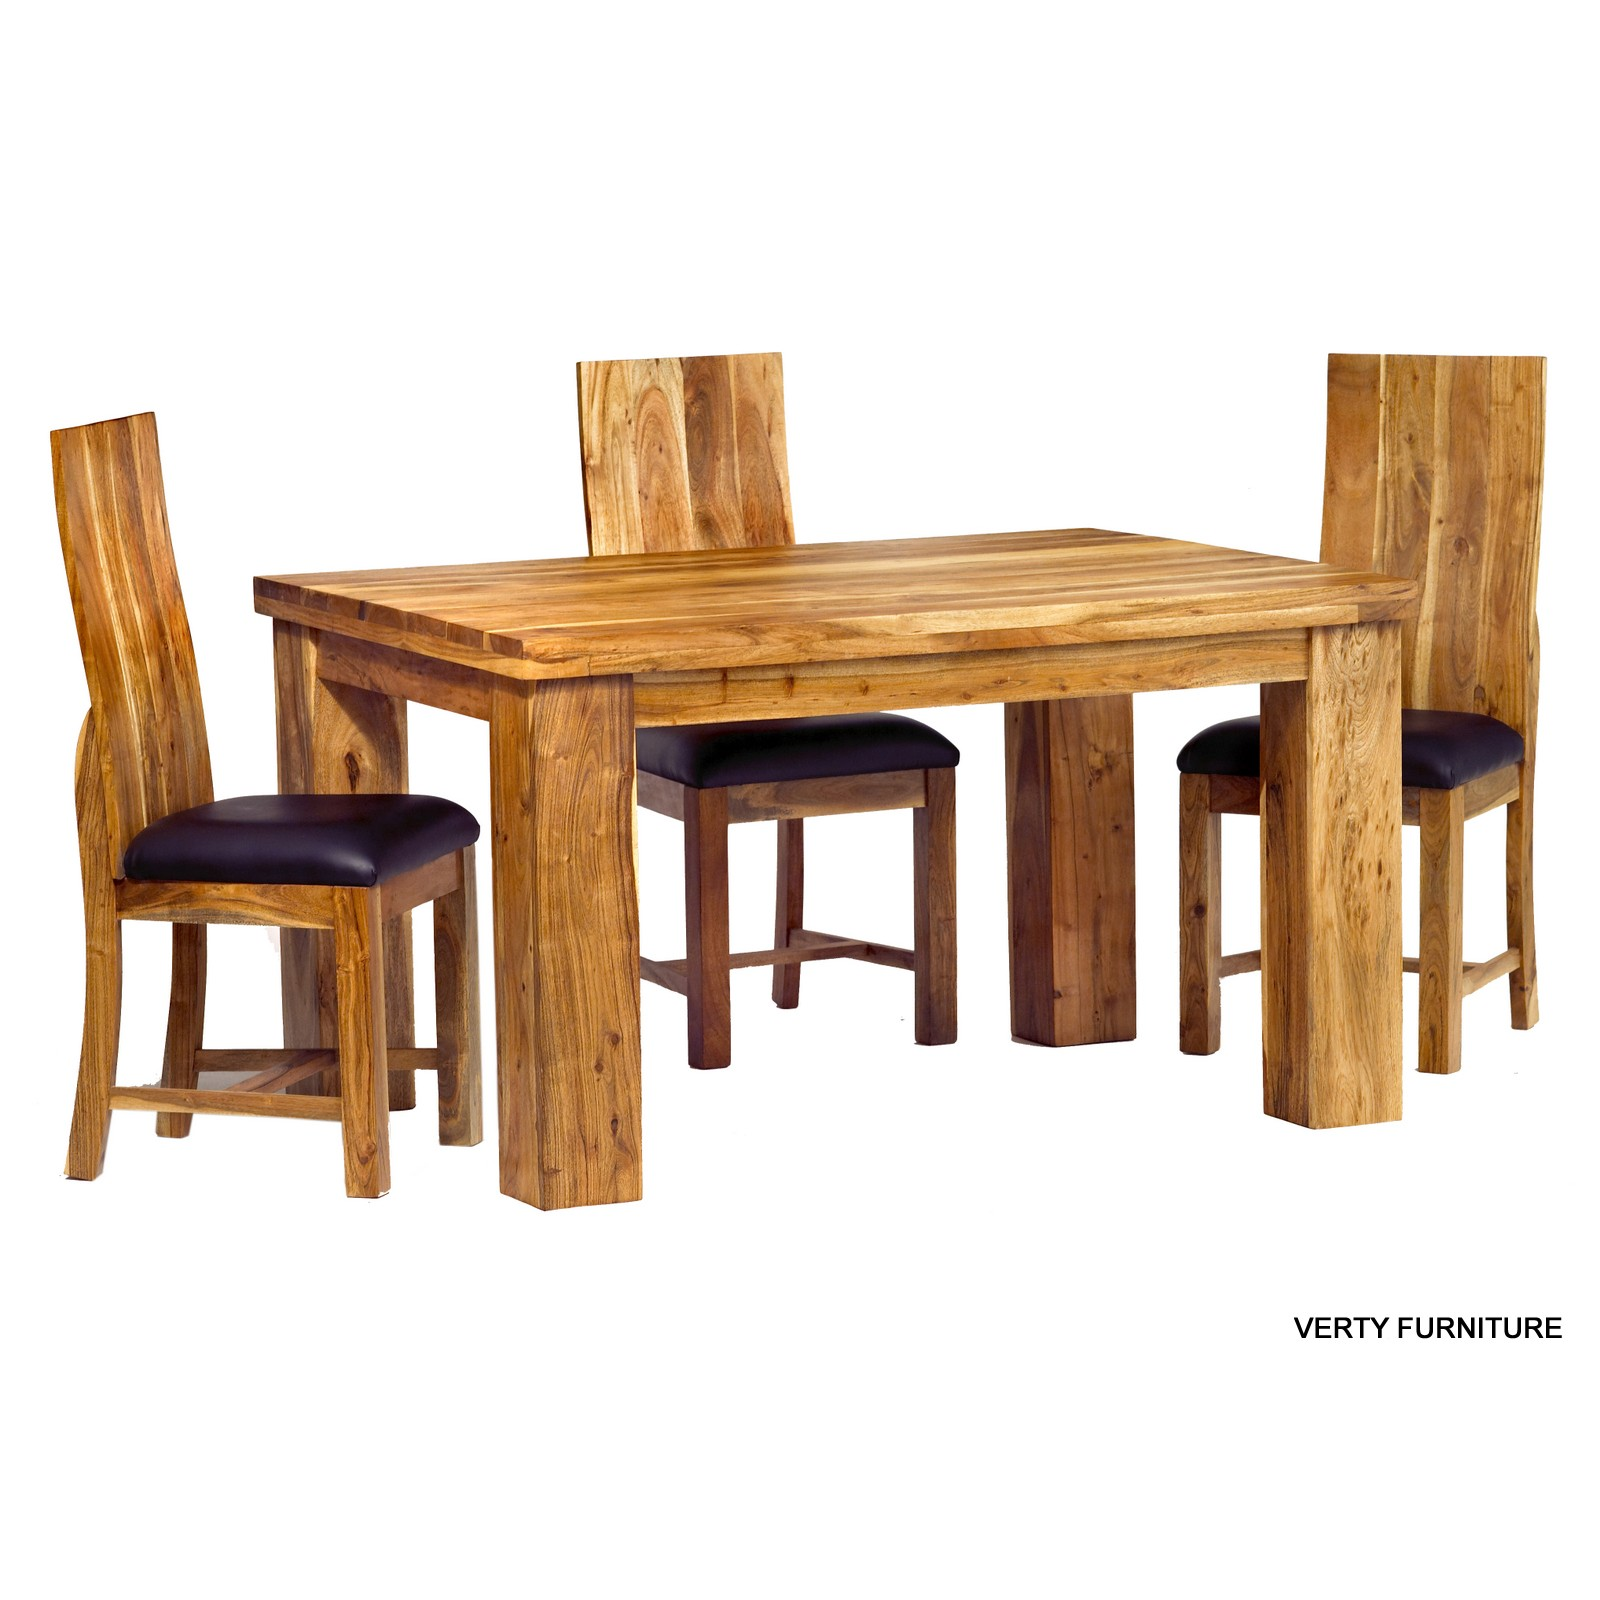 Acacia dining table small with 4 chairs verty indian for Small dining table with 4 chairs